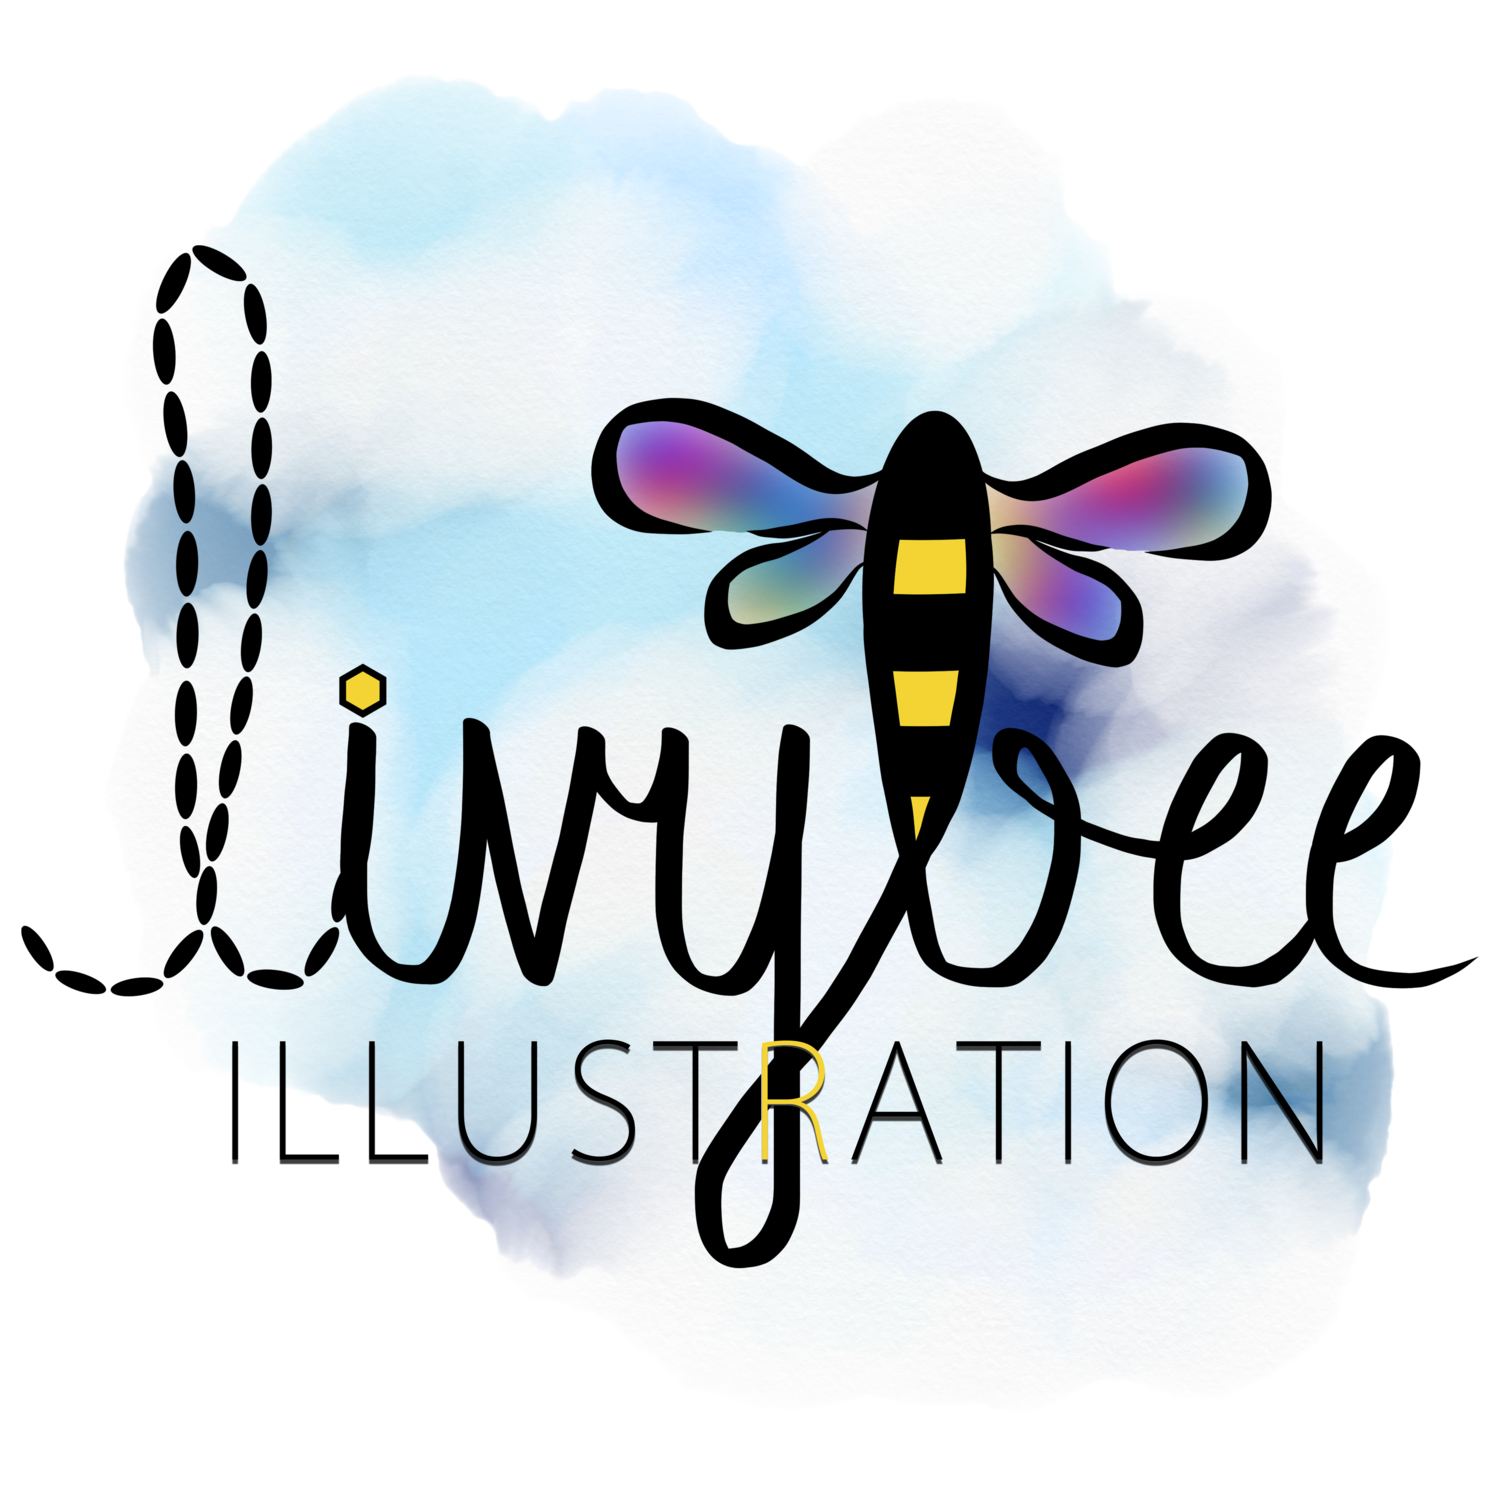 Livy Bee Illustration